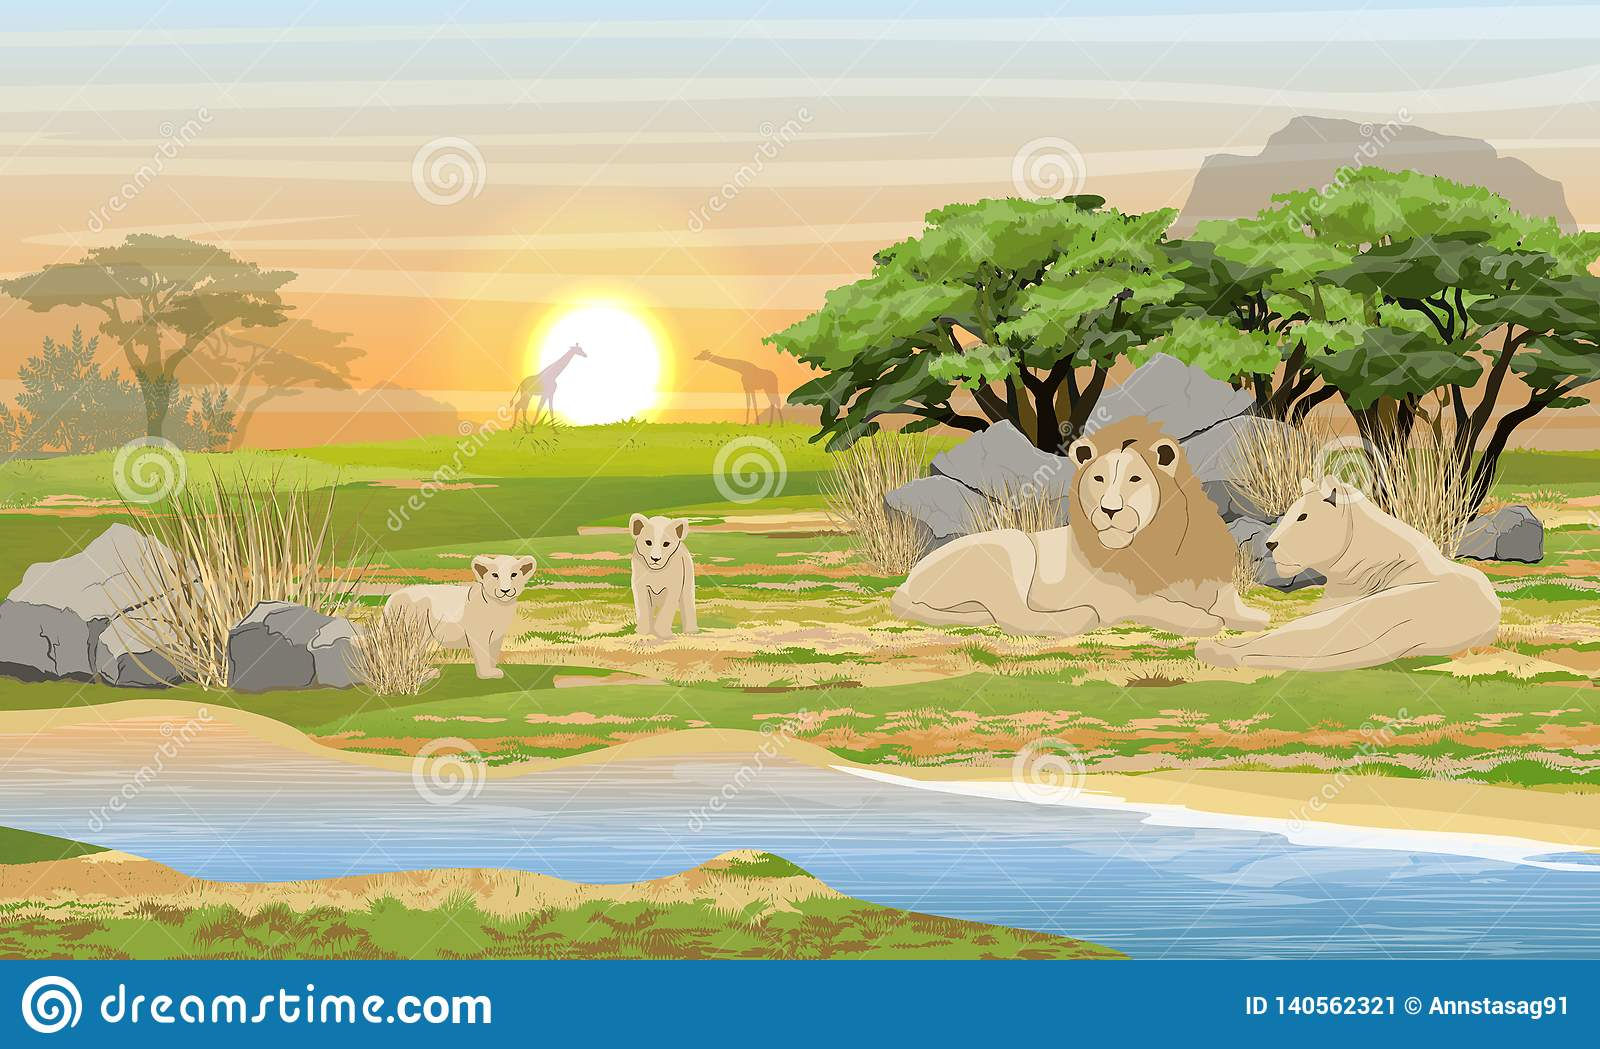 A family of lions resting near a lake in the African savannah